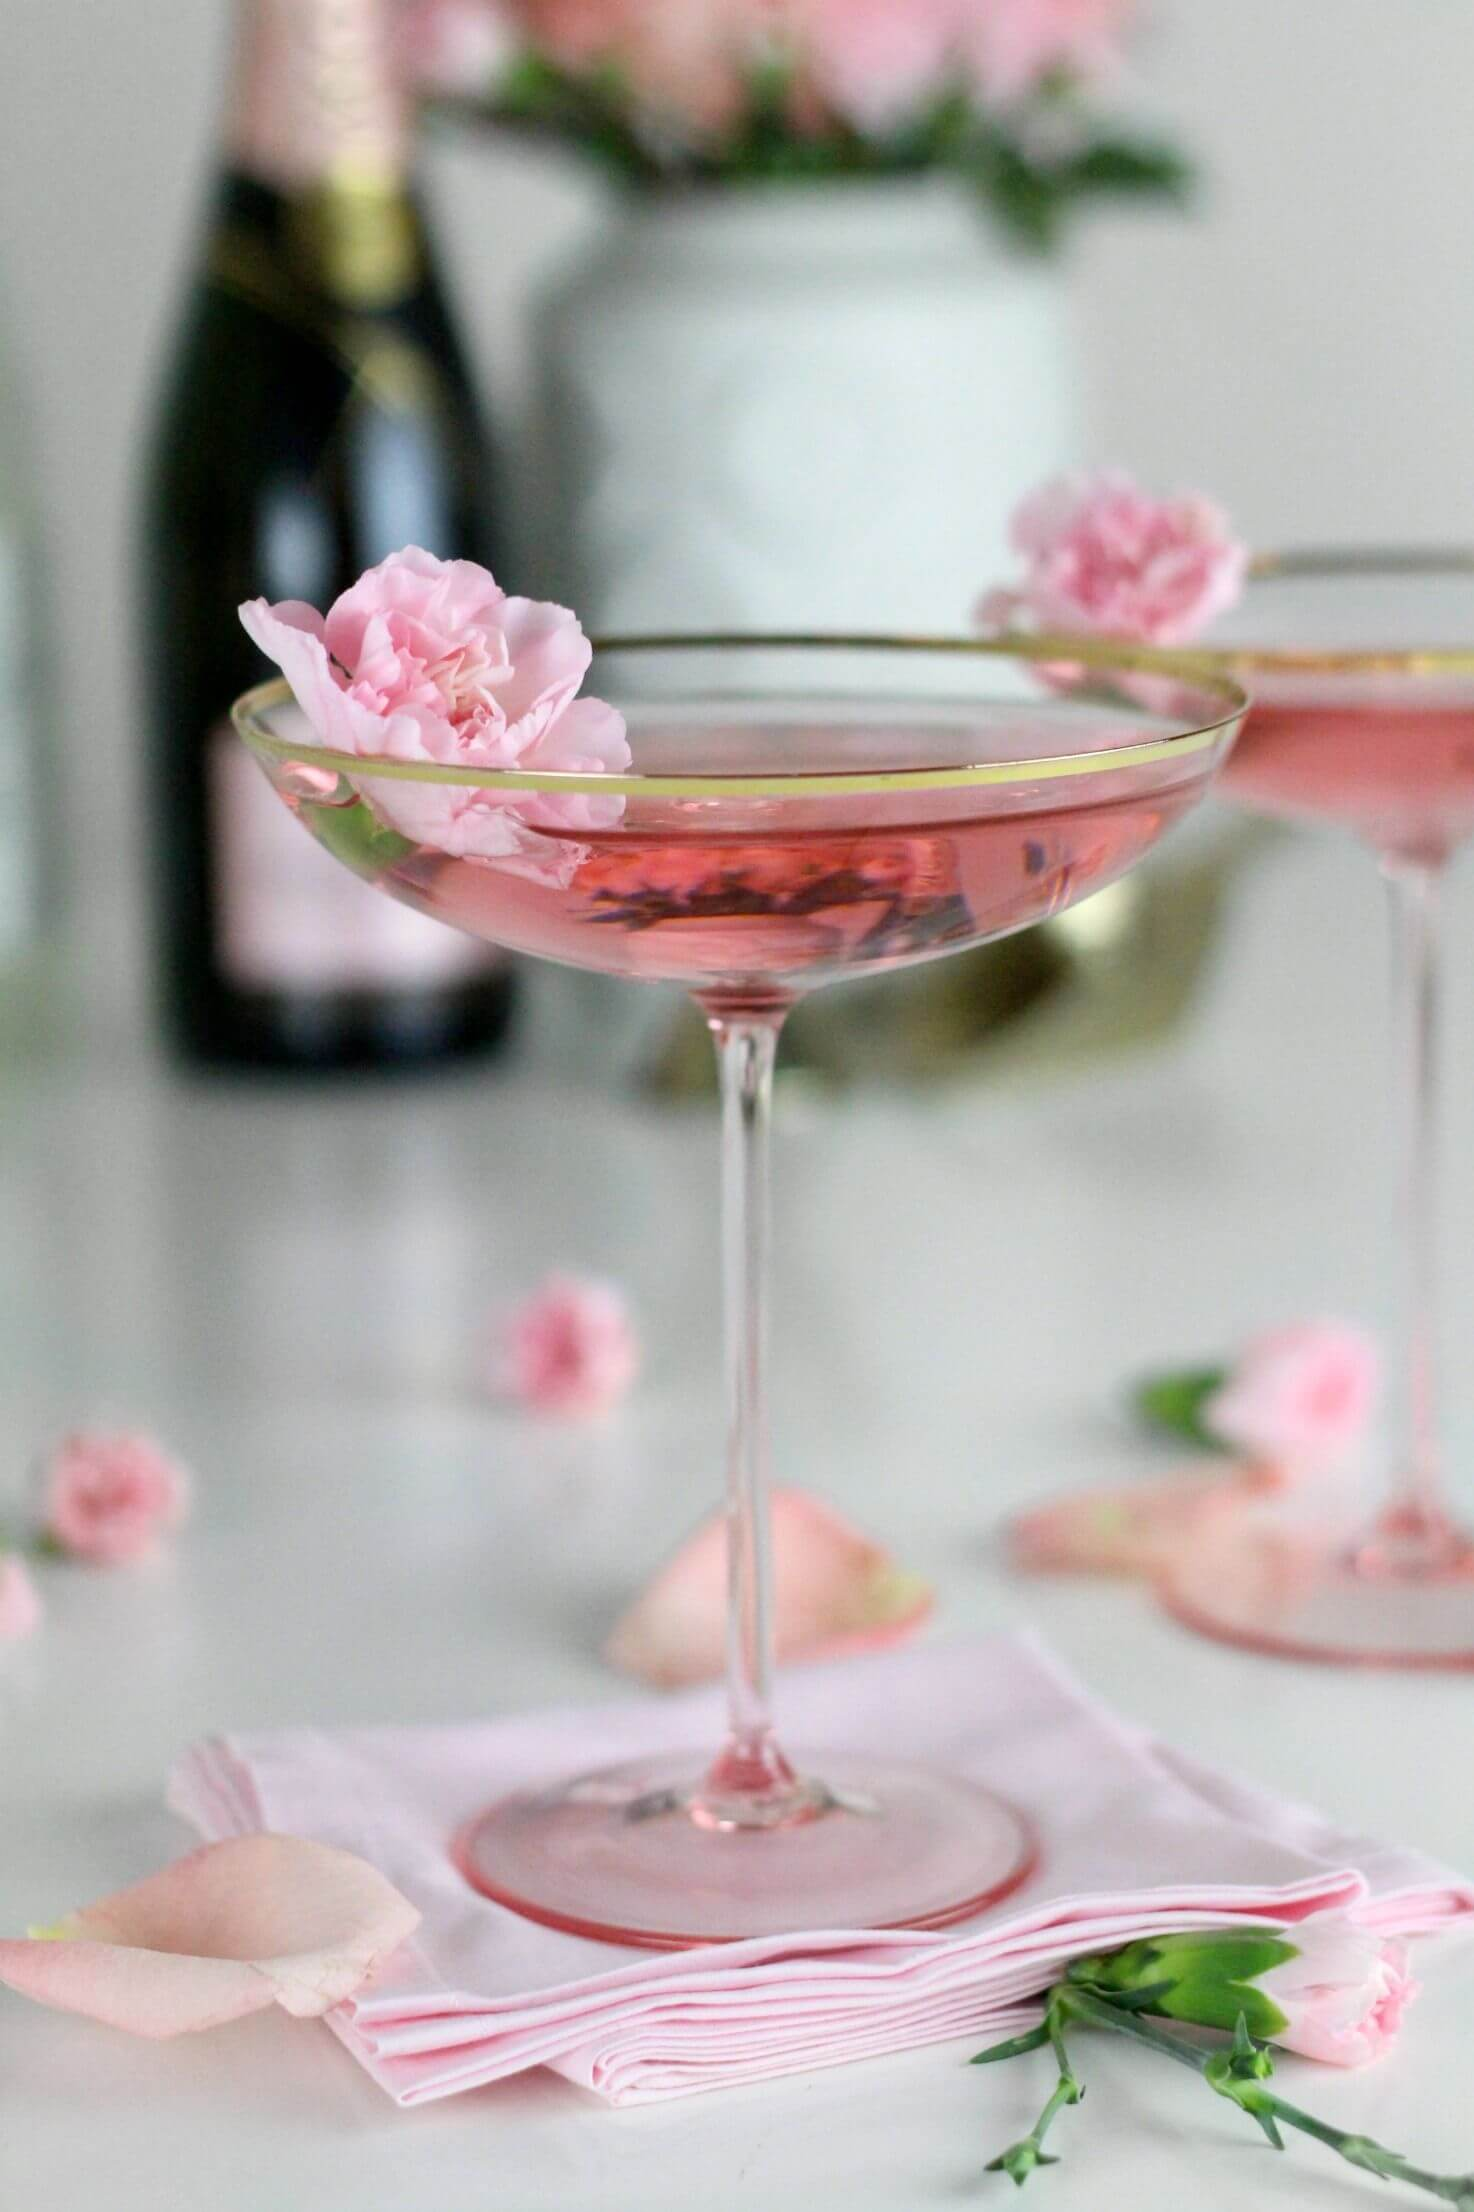 Bubbly Bouquet cocktails